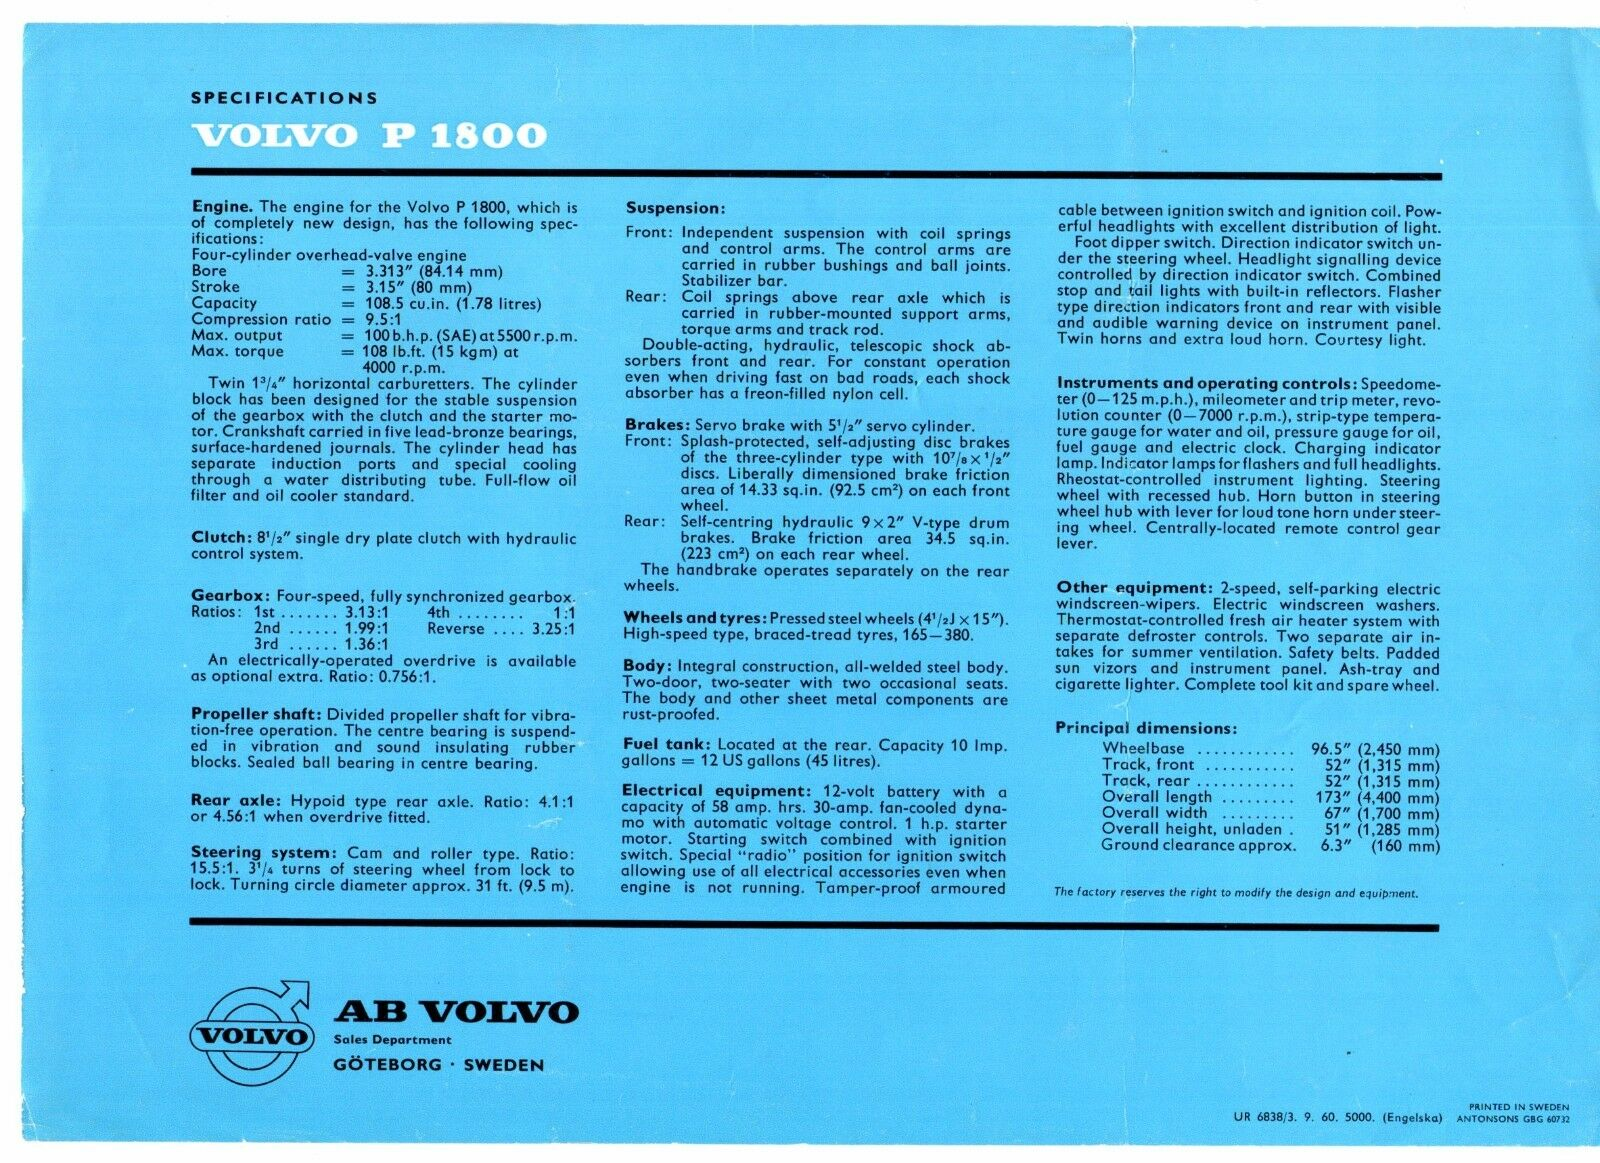 Volvo P1800 Coupe 1960 61 Uk Market Leaflet Sales Brochure Ebay Audible Flasher Warning Norton Secured Powered By Verisign